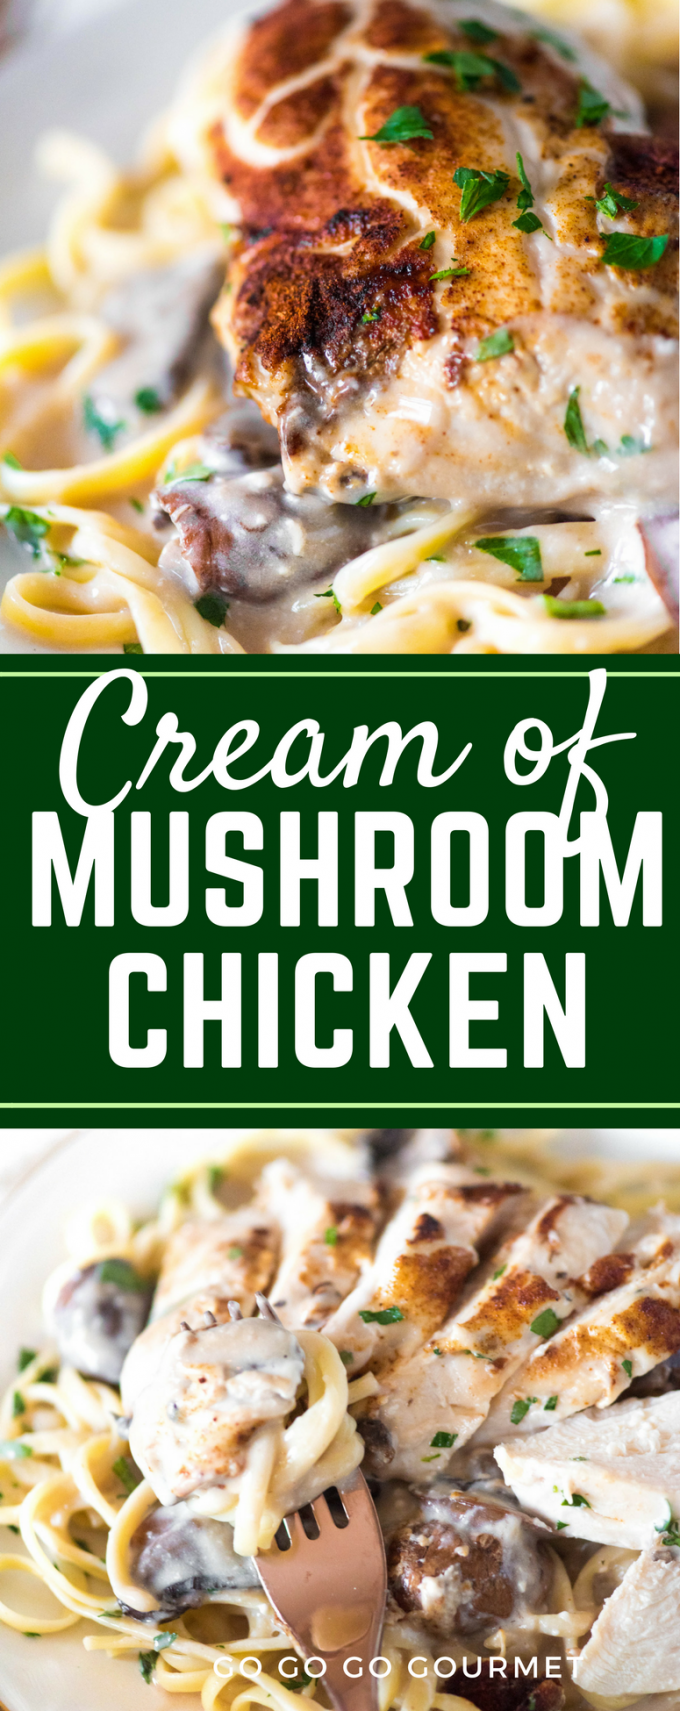 This easy Cream of Mushroom Chicken is one of my favorite recipes! Whether baked or made in the slow cooker or crockpot, this is a dinner that the whole family will love! It is great served with both pasta and rice. #creamofmushroomchicken #easychickendinners #easychickenrecipes #gogogogourmet